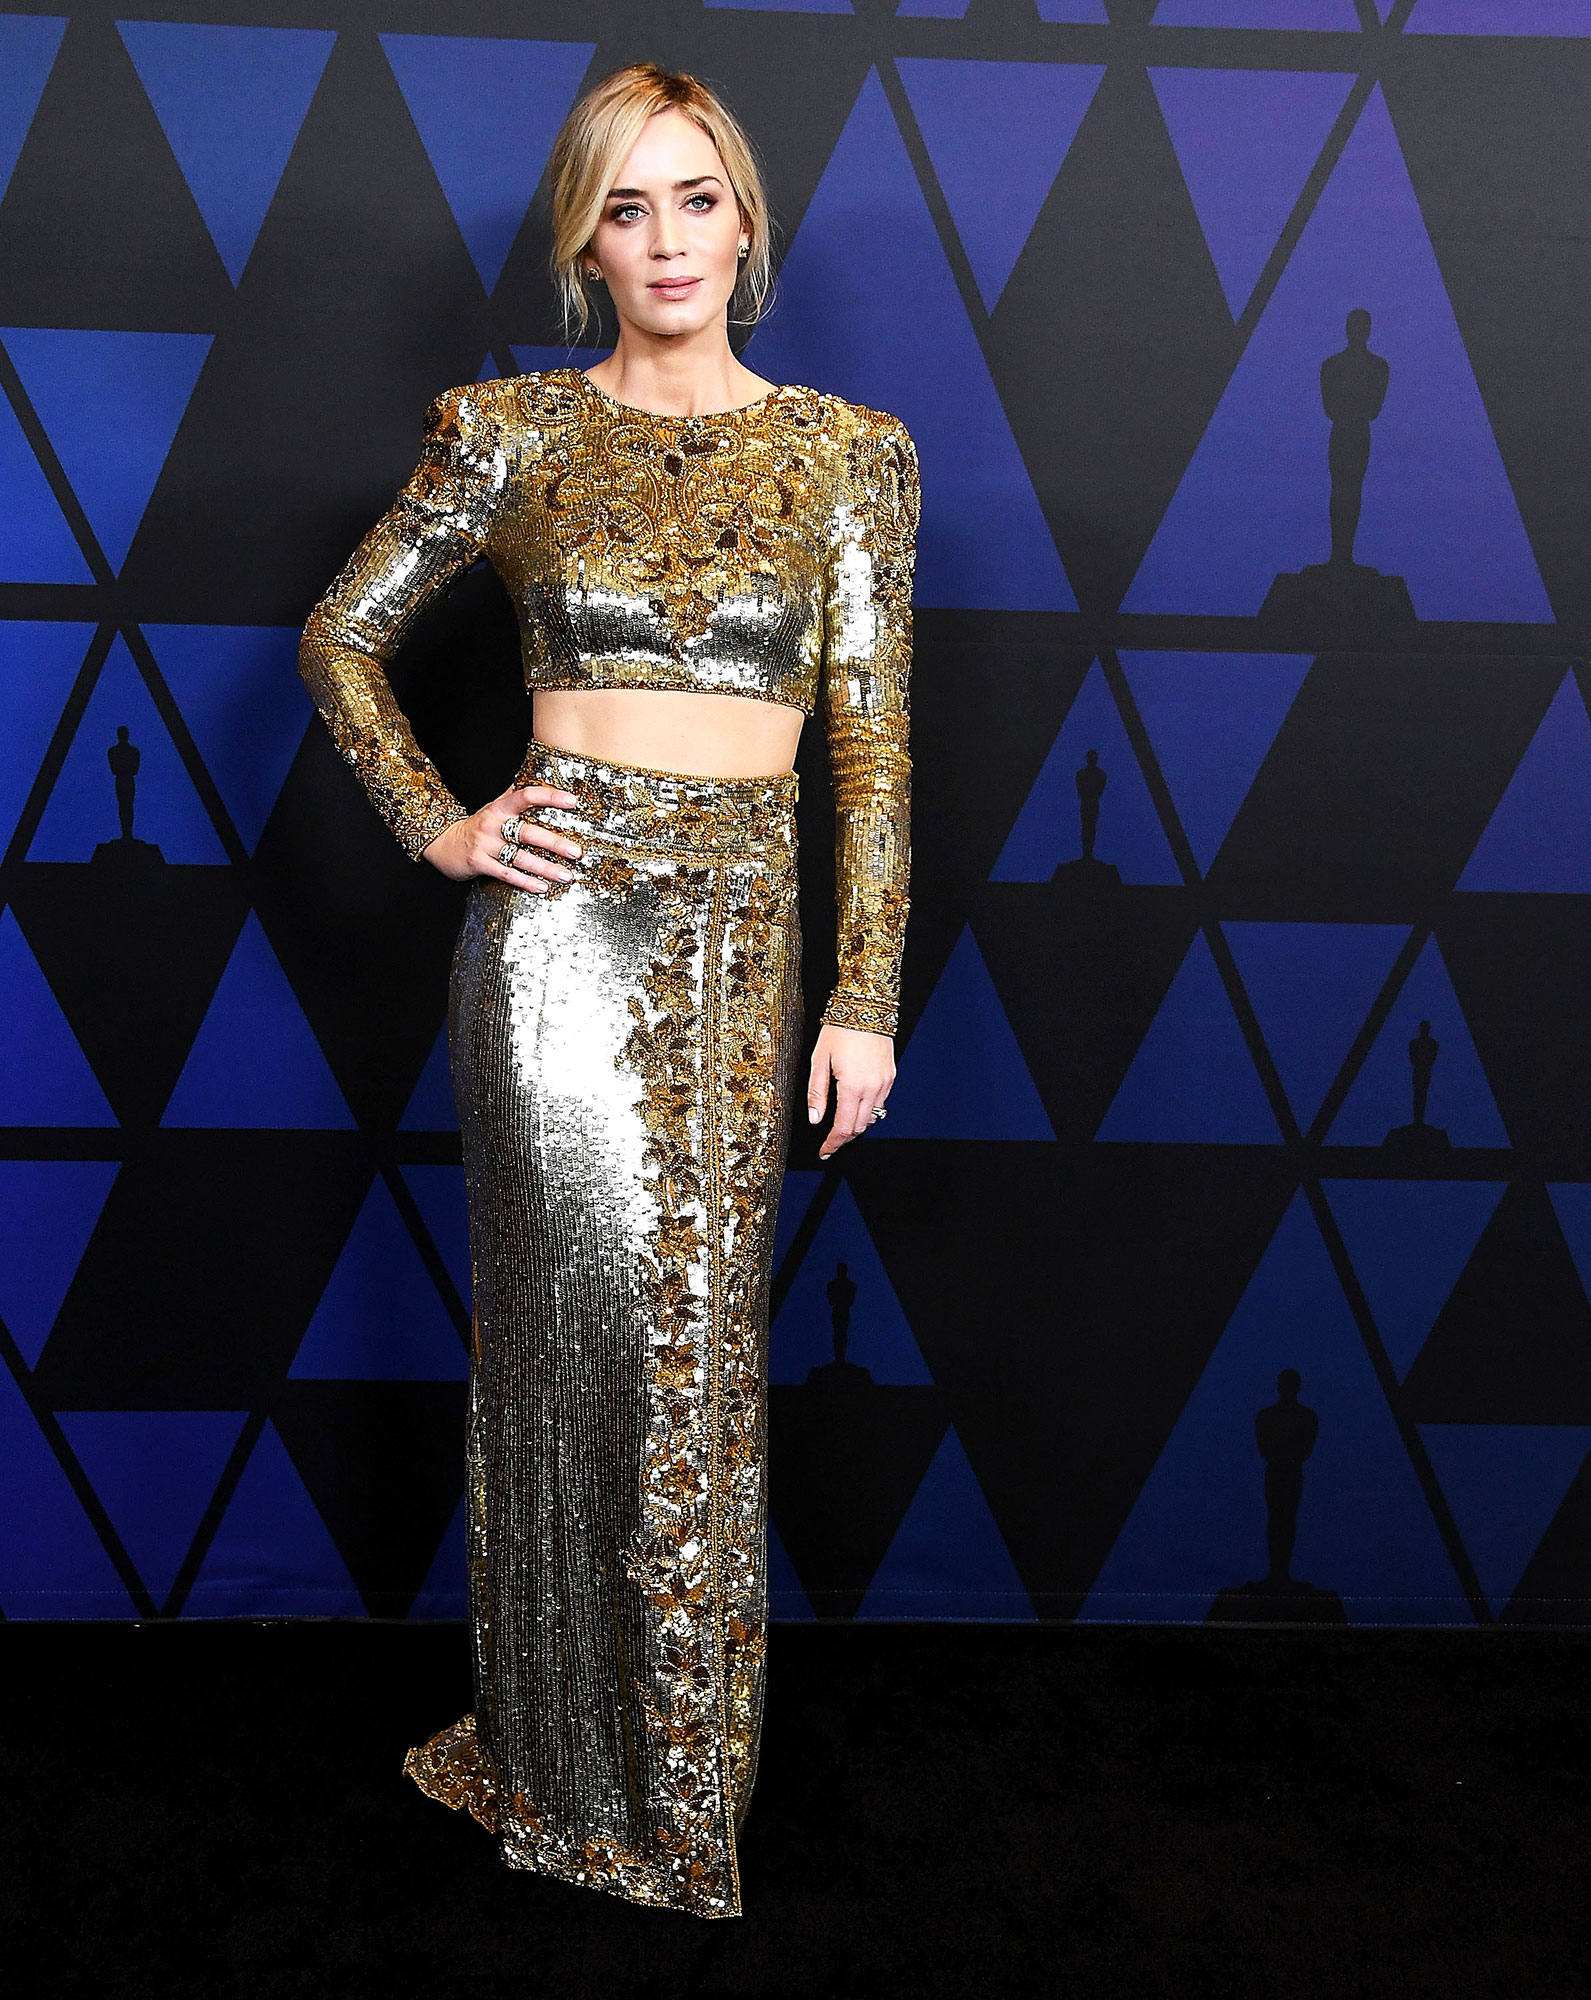 Emily Blunt arrives at the Academy Of Motion Picture Arts And Sciences' 10th Annual Governors Awards - In an embroidered Dundas top and skirt with David Yurman studs and rings.